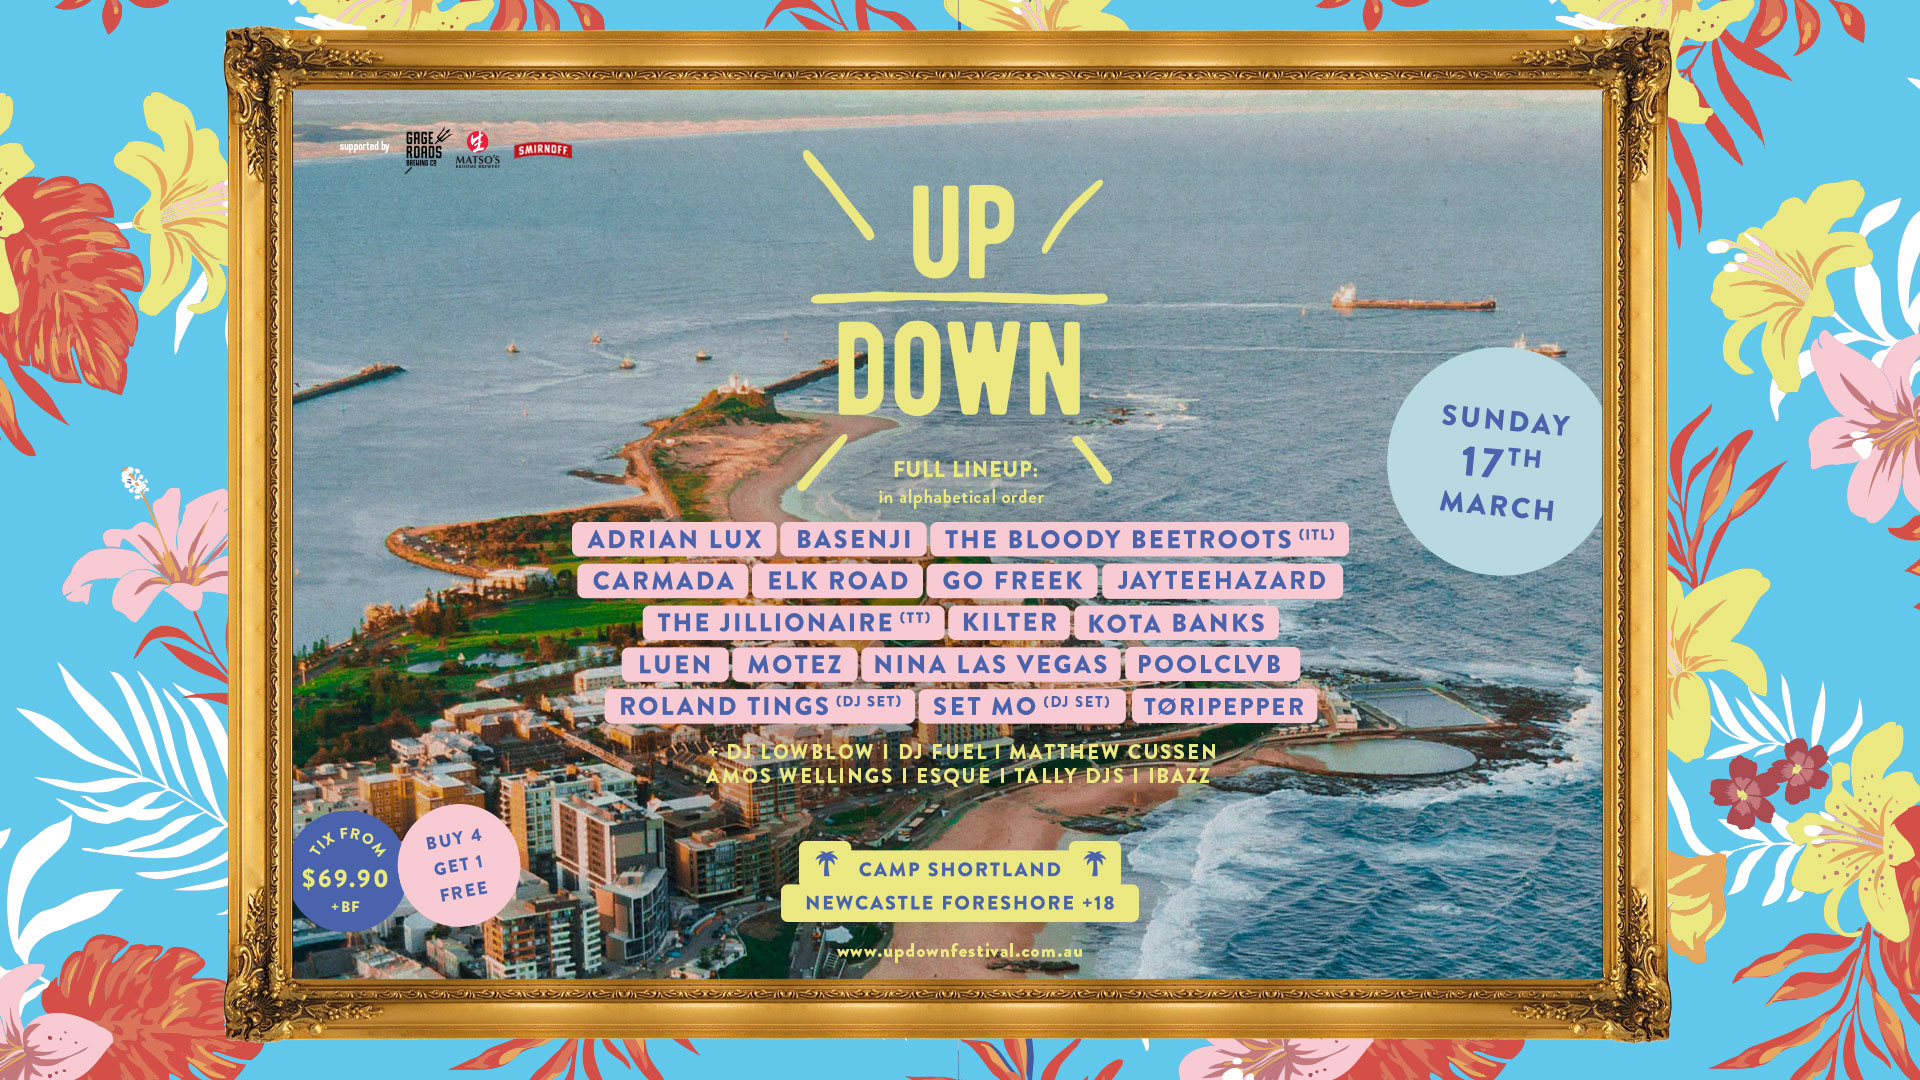 Tickets for UP DOWN Festival in Newcastle from Ticketbooth